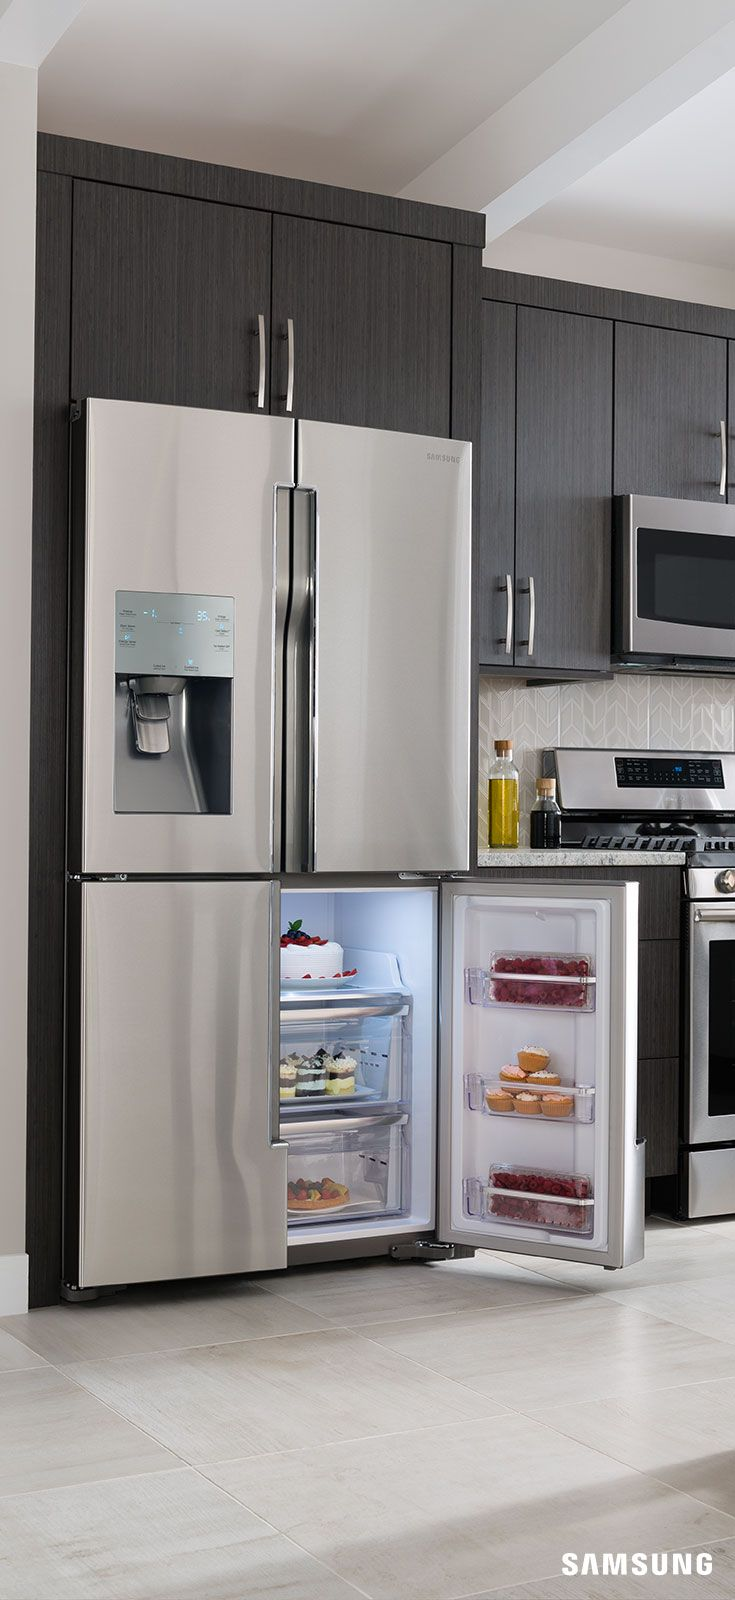 The stainless steel Samsung 4-Door-Flex Refrigerator is the perfect complement to a sleek, modern kitchen design. Its clean, symmetrical lines add an enviable wow factor when paired with dark stained wooden cabinetry and marble countertops. The fridge is also equipped with the latest technology utilized in the customizable temperature in-door control panel to help your family's favorite foods stay fresh - or frozen - longer.